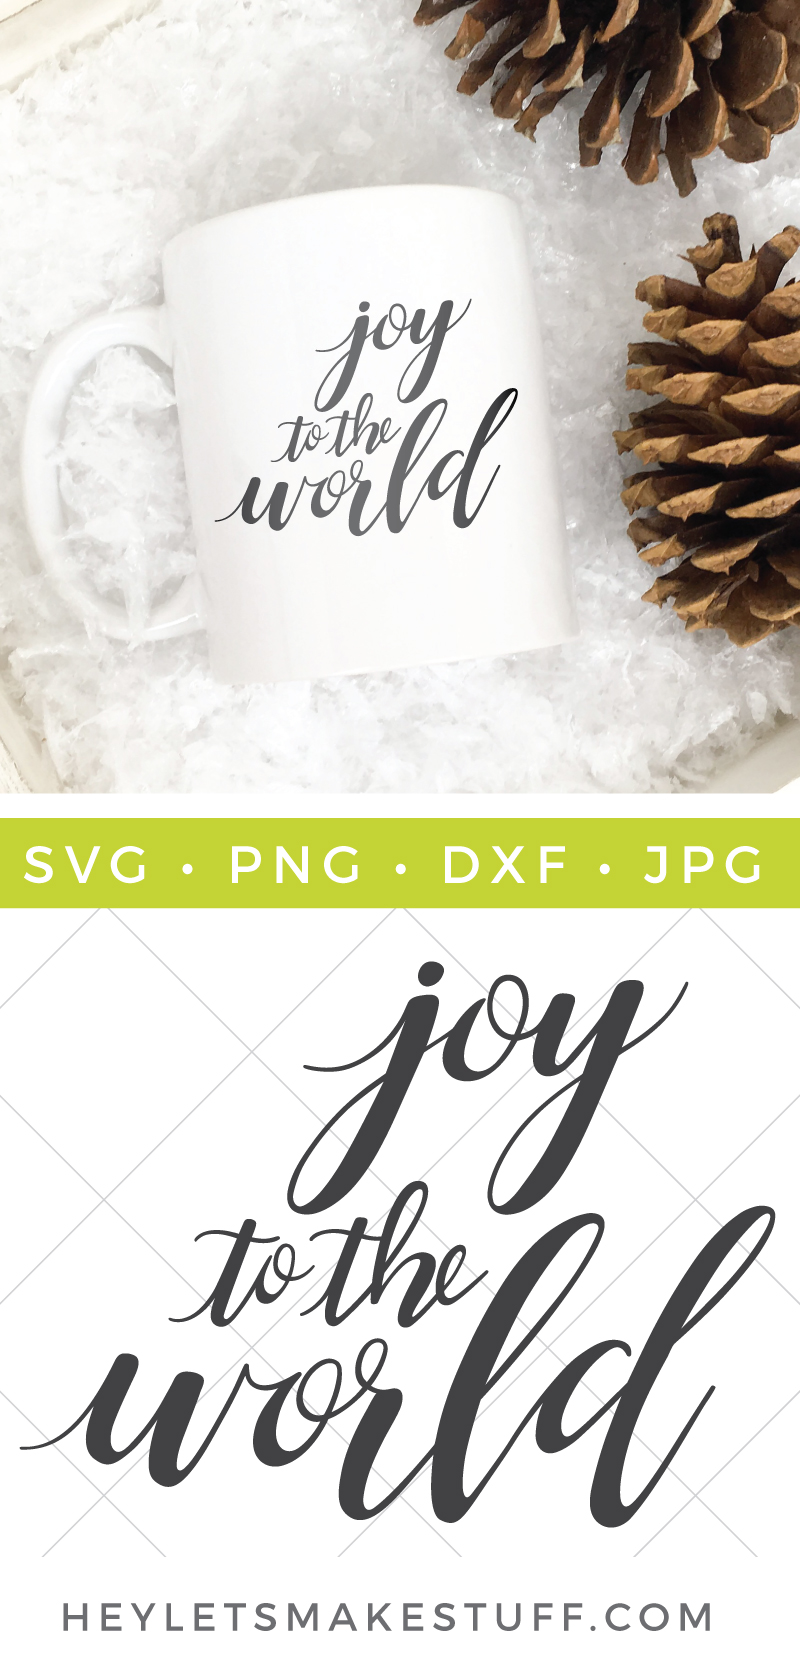 It's the perfect time of year to spread a little JOY to all those near and far! Create totes, shirts, pillows, printables and so much more with this Joy to the World SVG! via @heyletsmakestuf